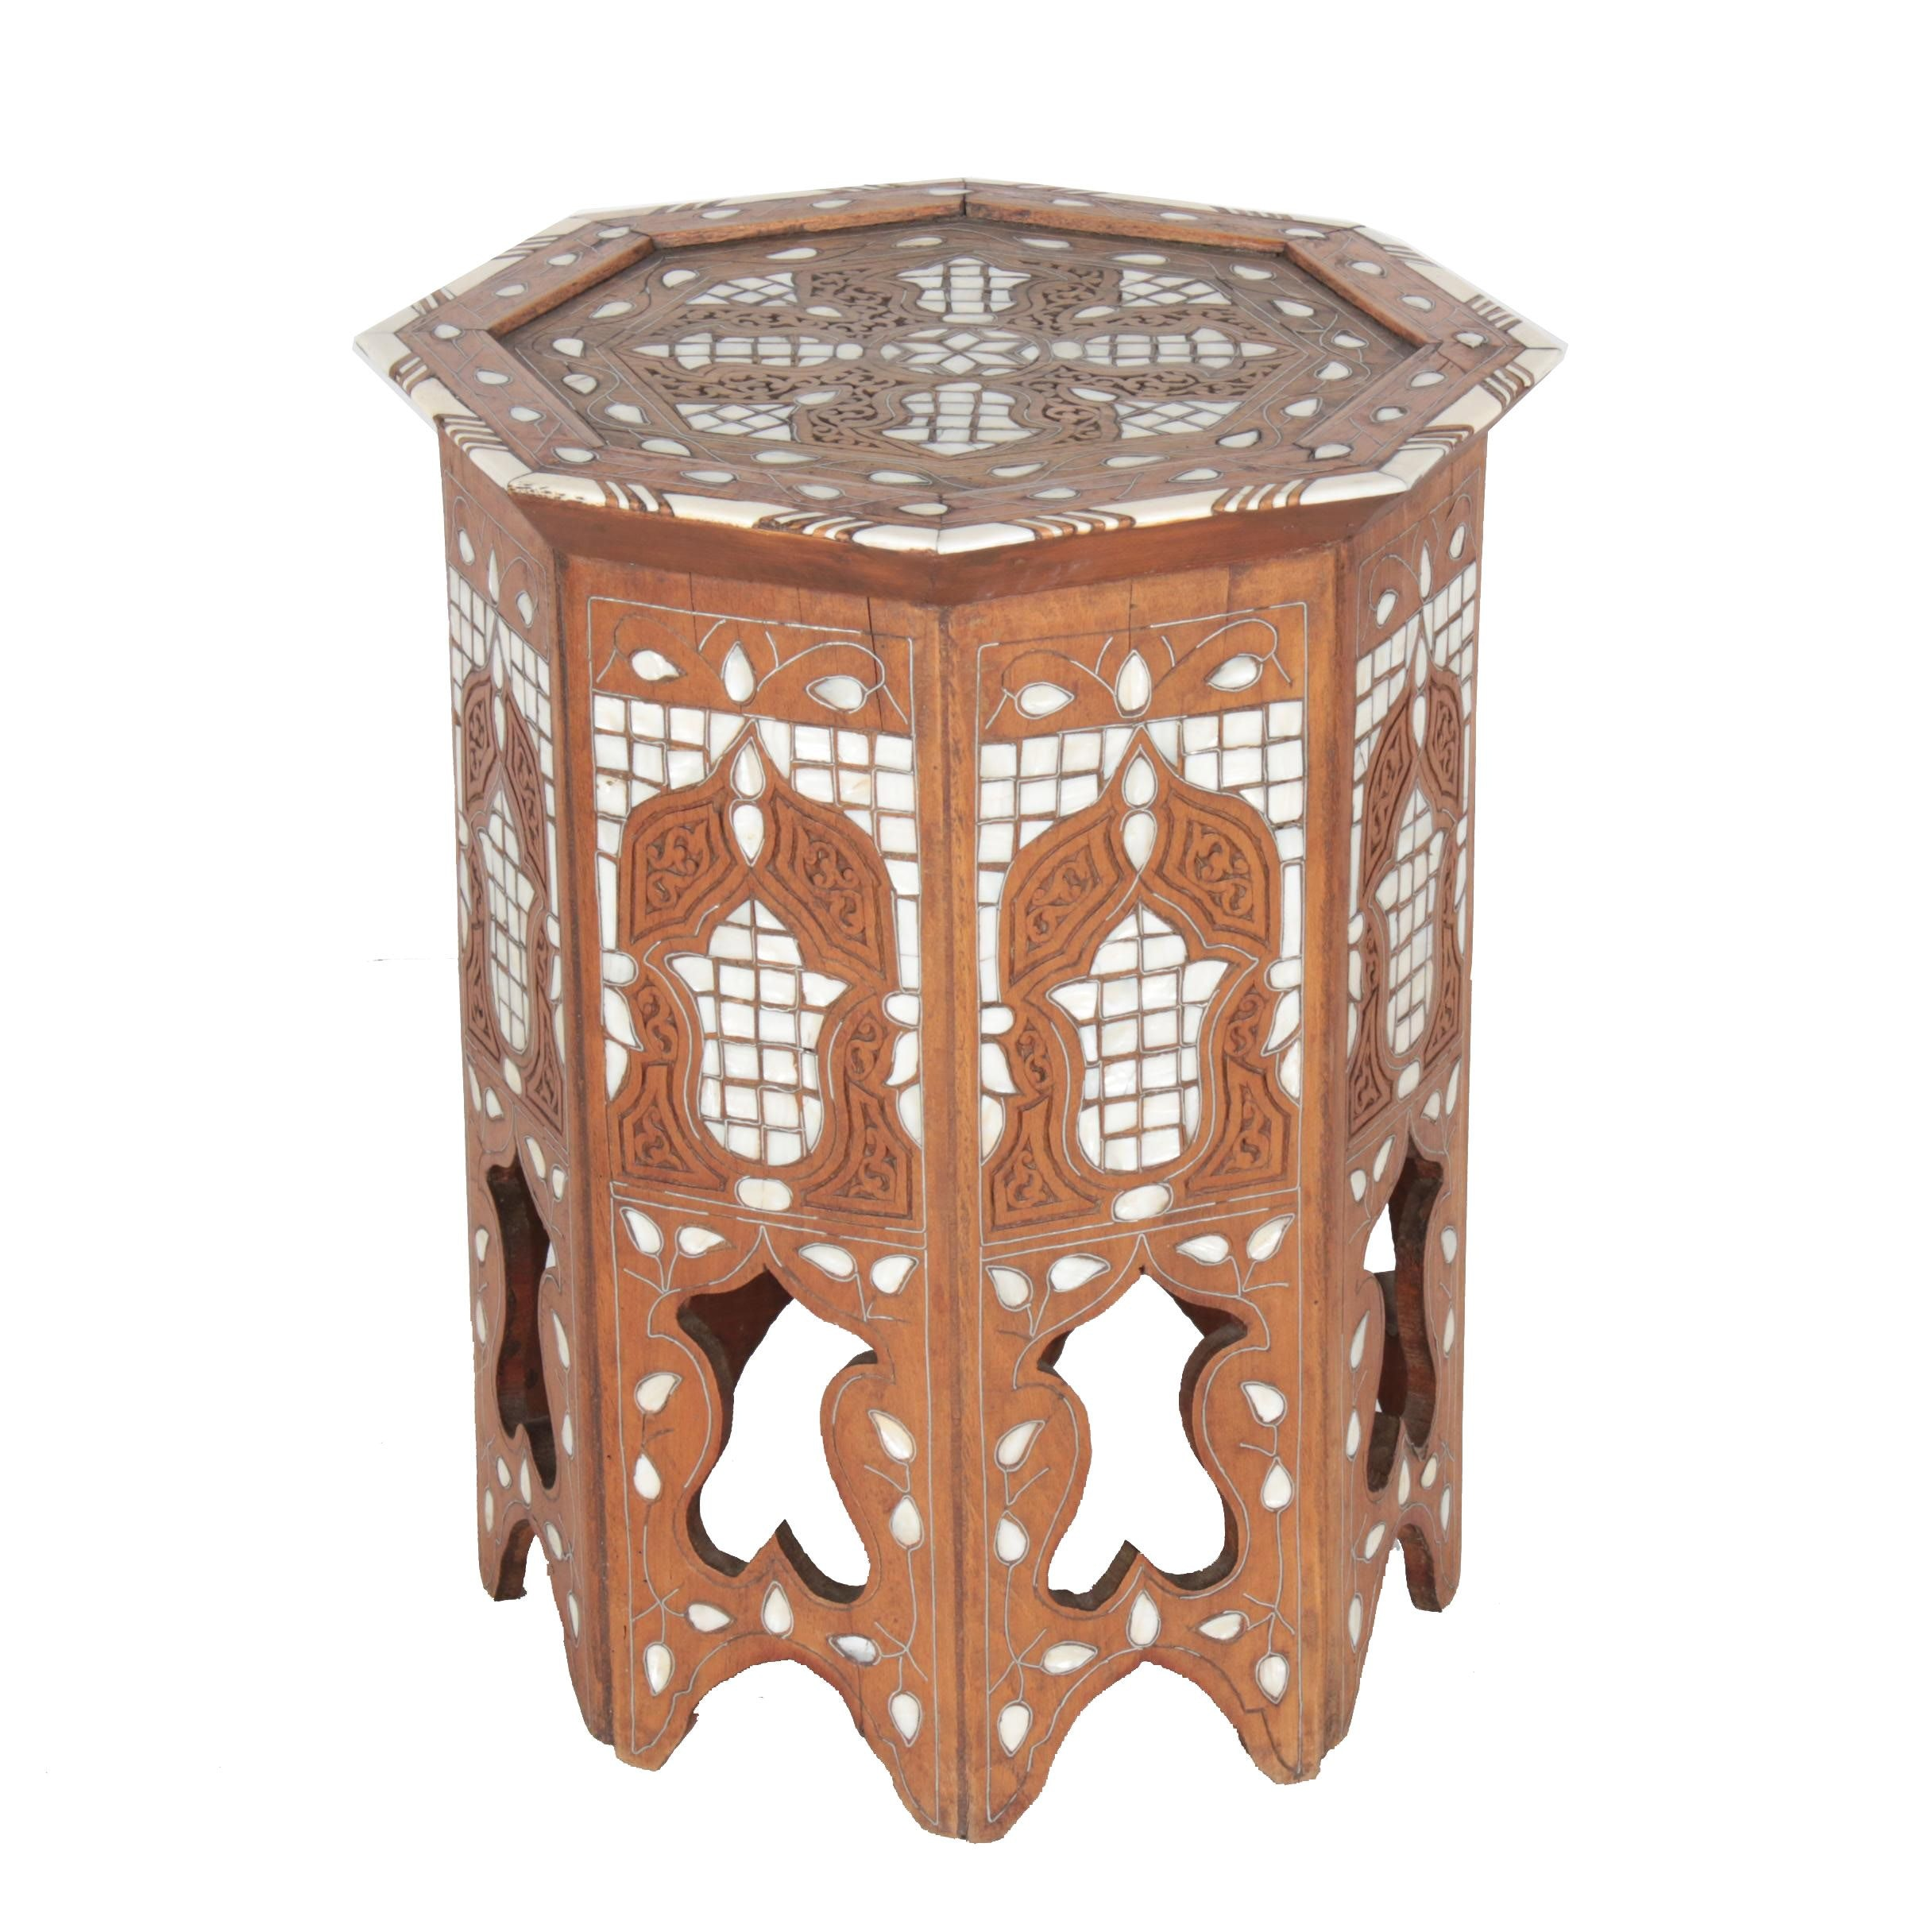 Vintage Moorish Hardwood Tabouret with Mother-of-Pearl and Bone Inlay